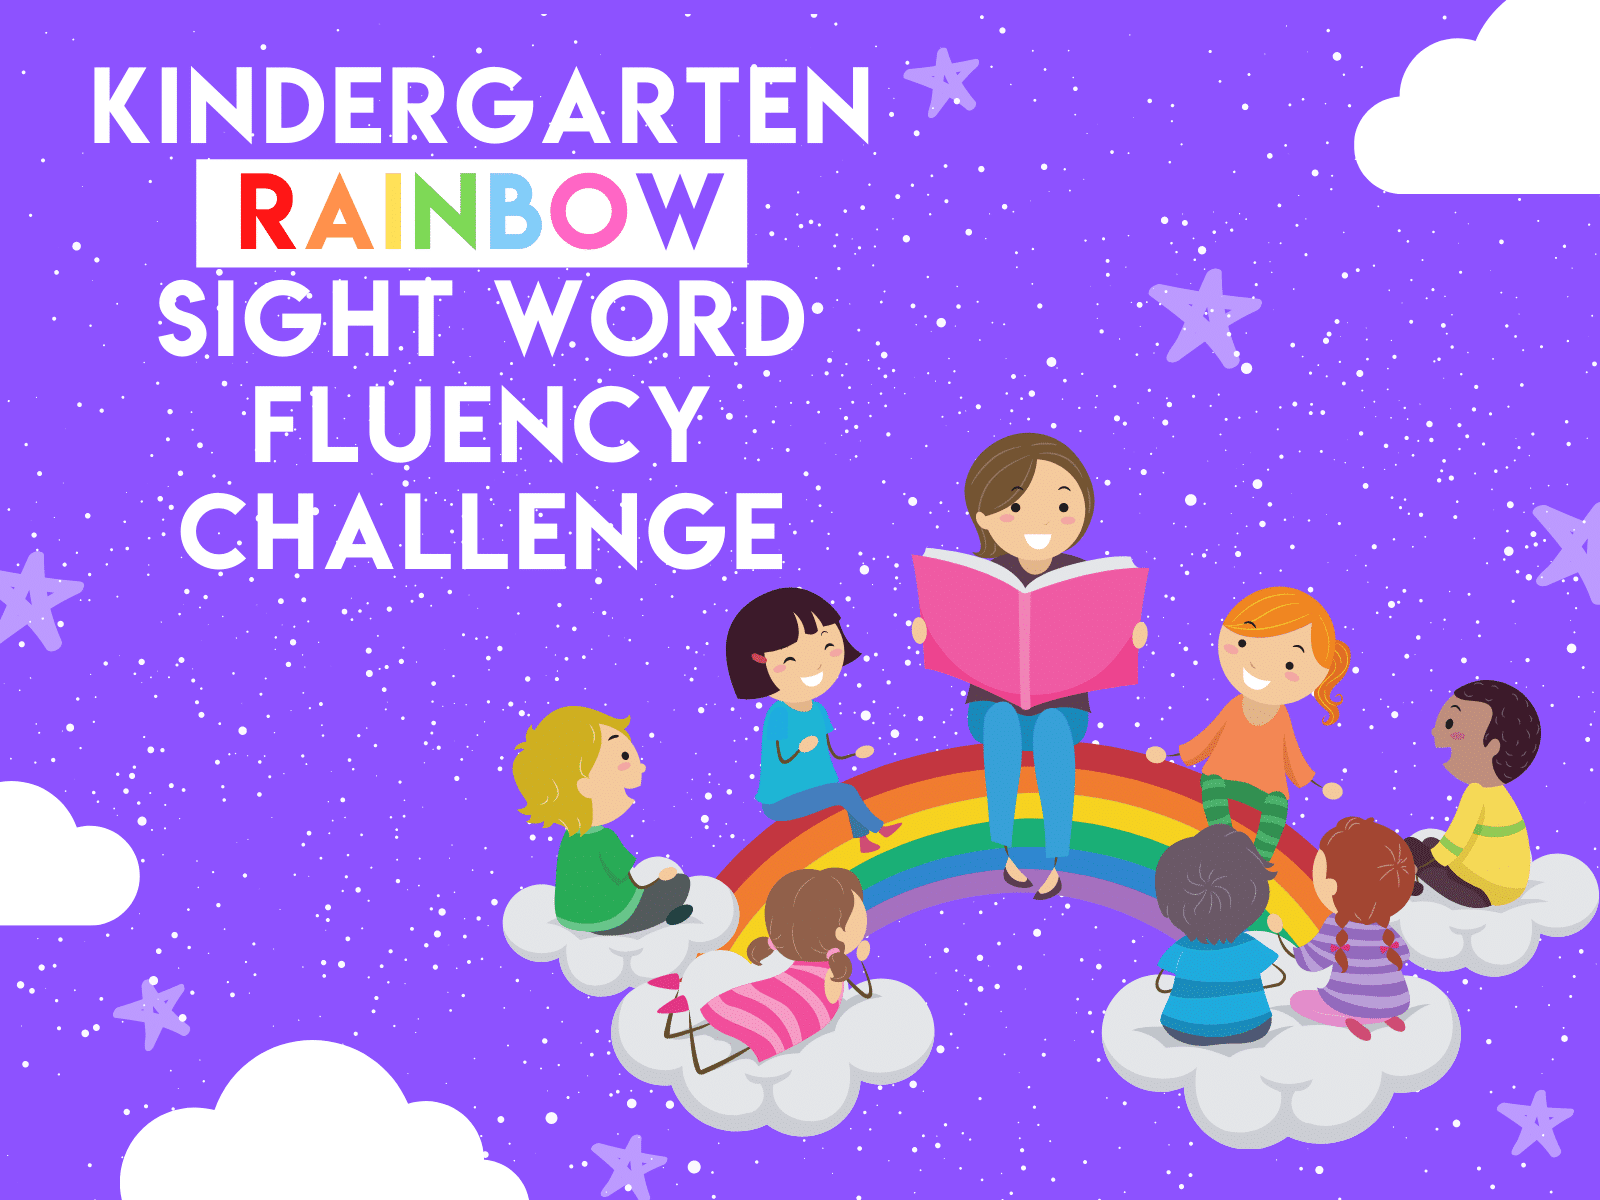 Try this rainbow sight word fluency challenge with your kindergartener with this free learning resource.